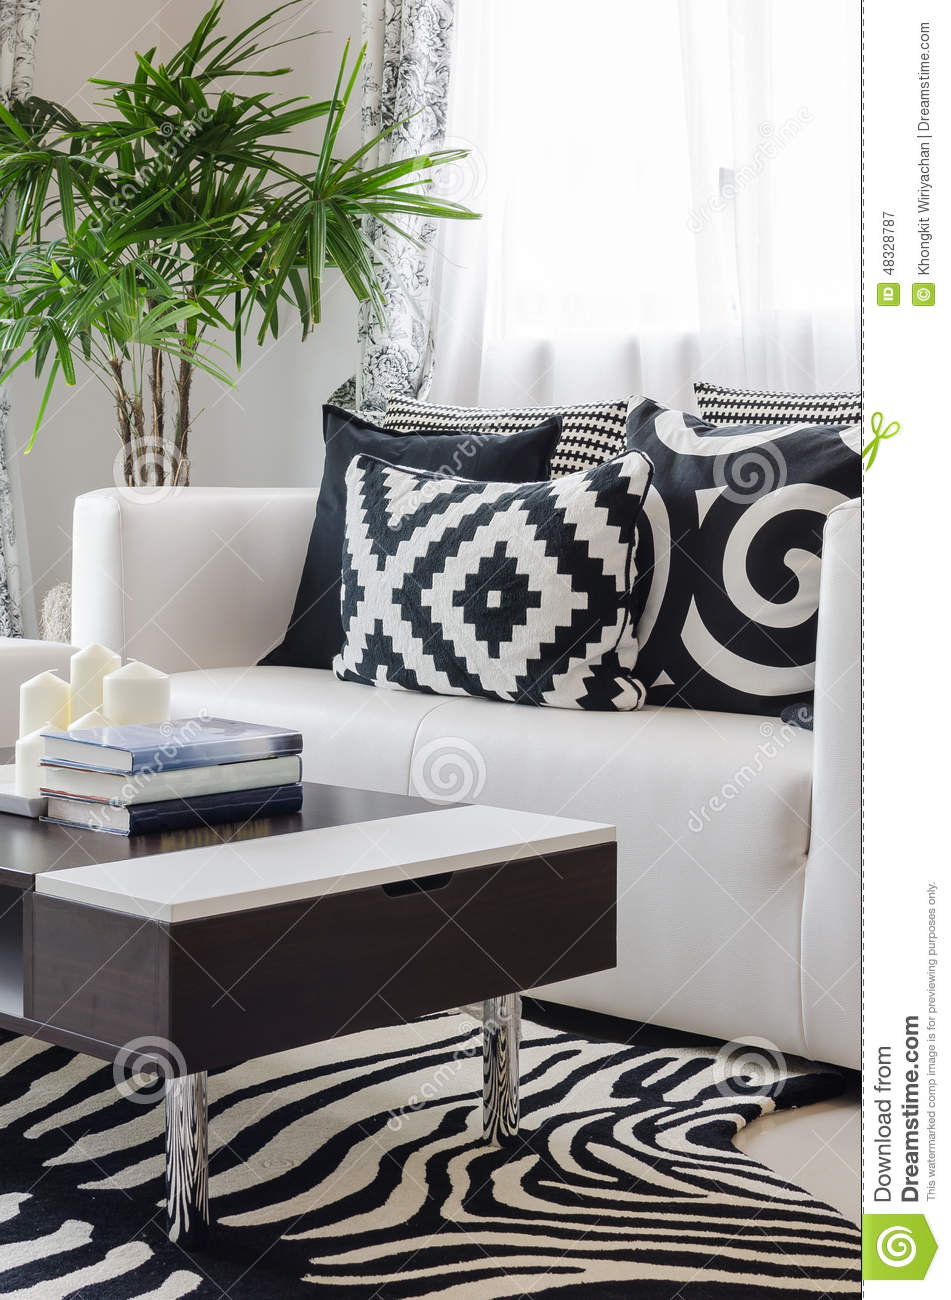 salon noir et blanc moderne la maison photo stock. Black Bedroom Furniture Sets. Home Design Ideas